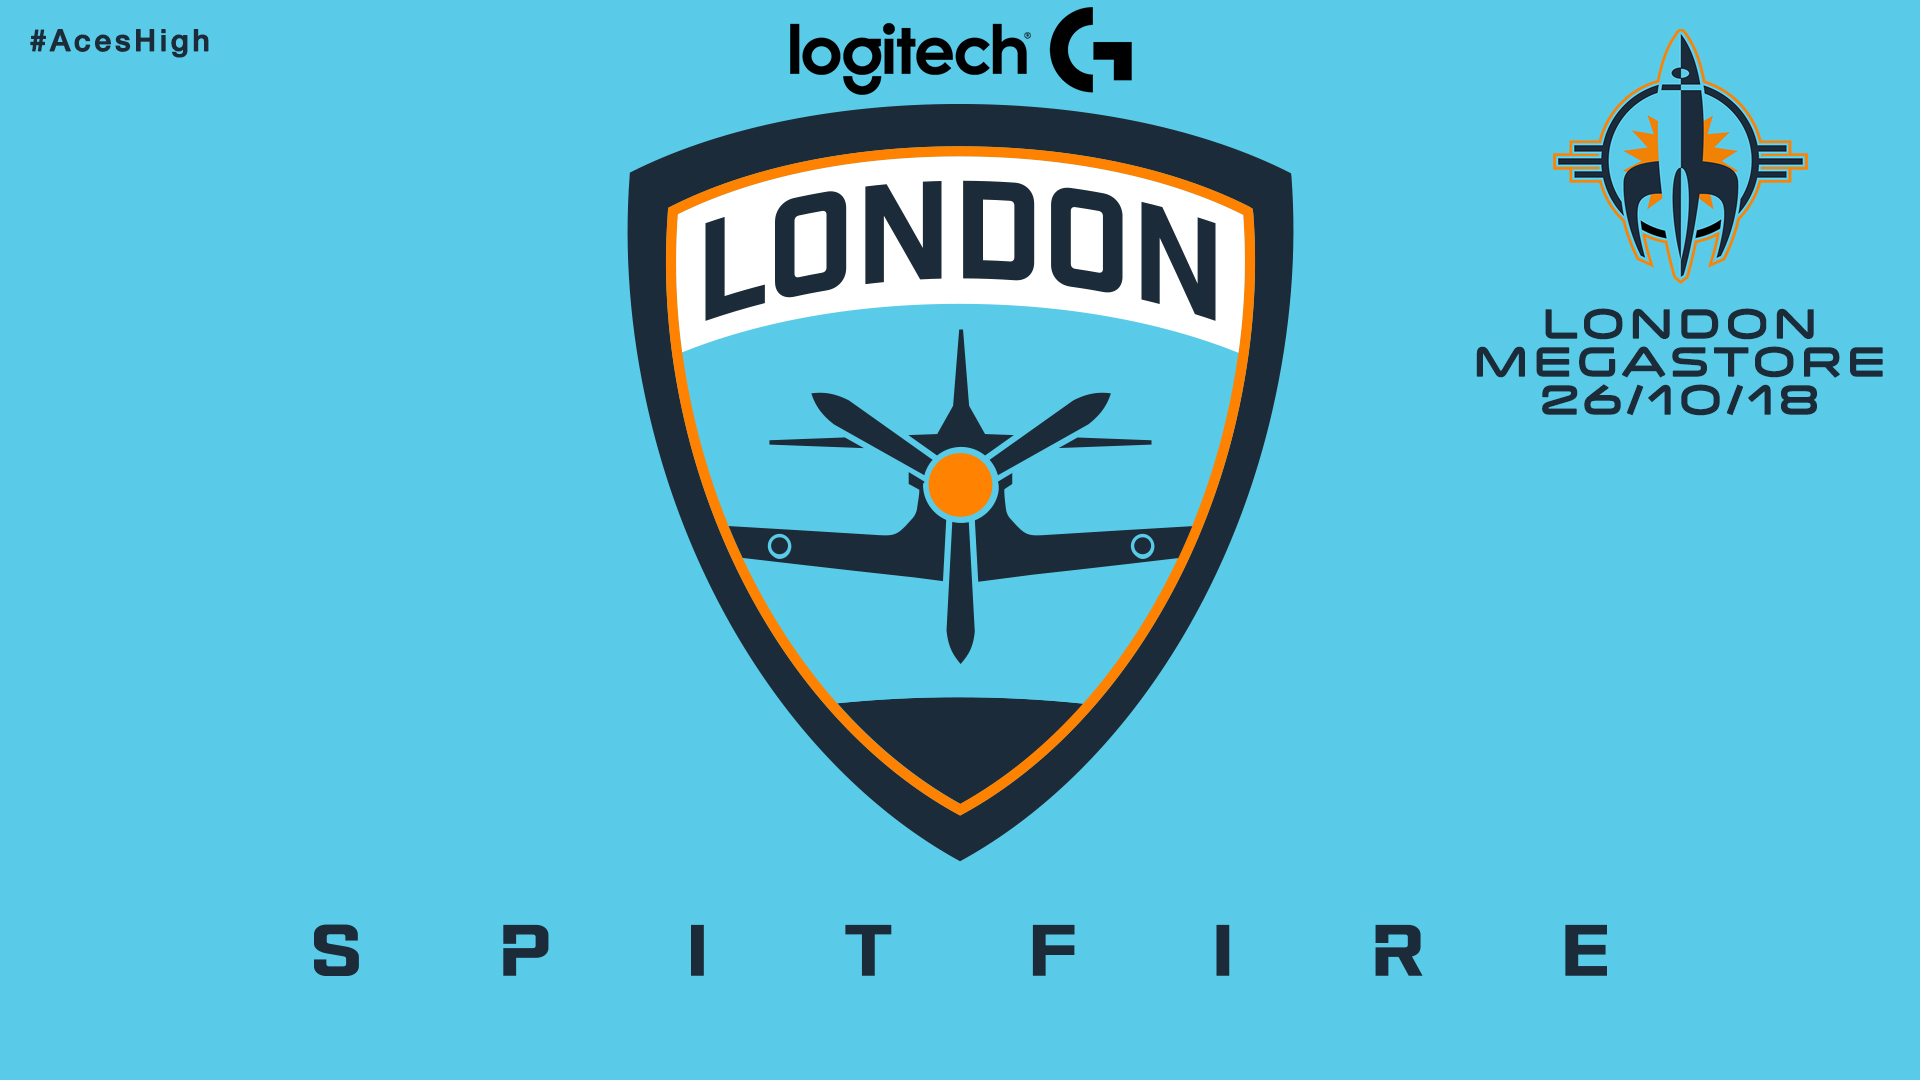 Meet and greet with the london spitfire forbiddenplanet uk in association with logitech g forbidden planet are proud to host a meet and greet with the overwatch leagues inaugural champions the london spitfire m4hsunfo